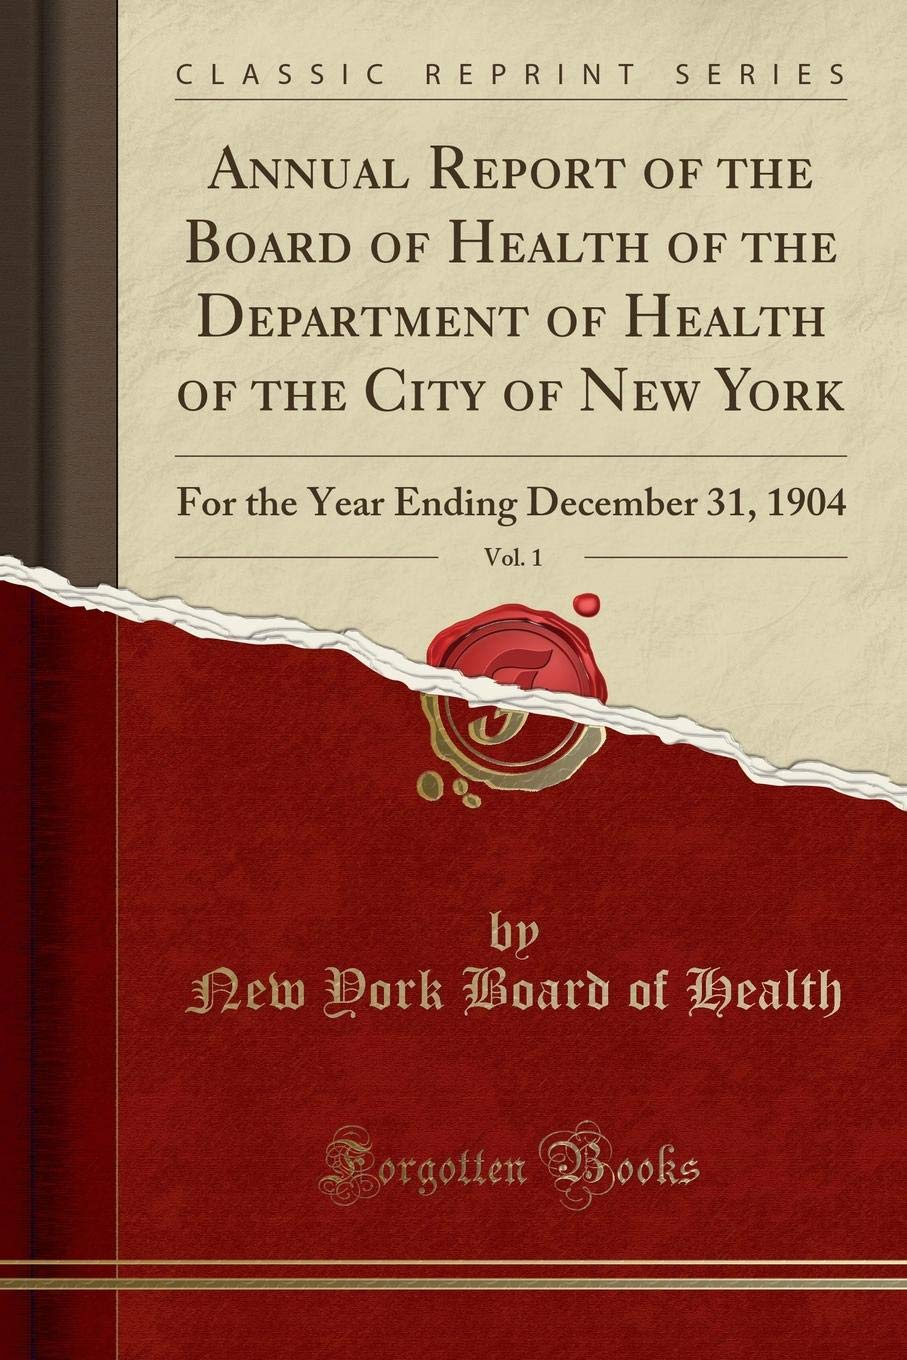 Download Annual Report of the Board of Health of the Department of Health of the City of New York, Vol. 1: For the Year Ending December 31, 1904 (Classic Reprint) ebook